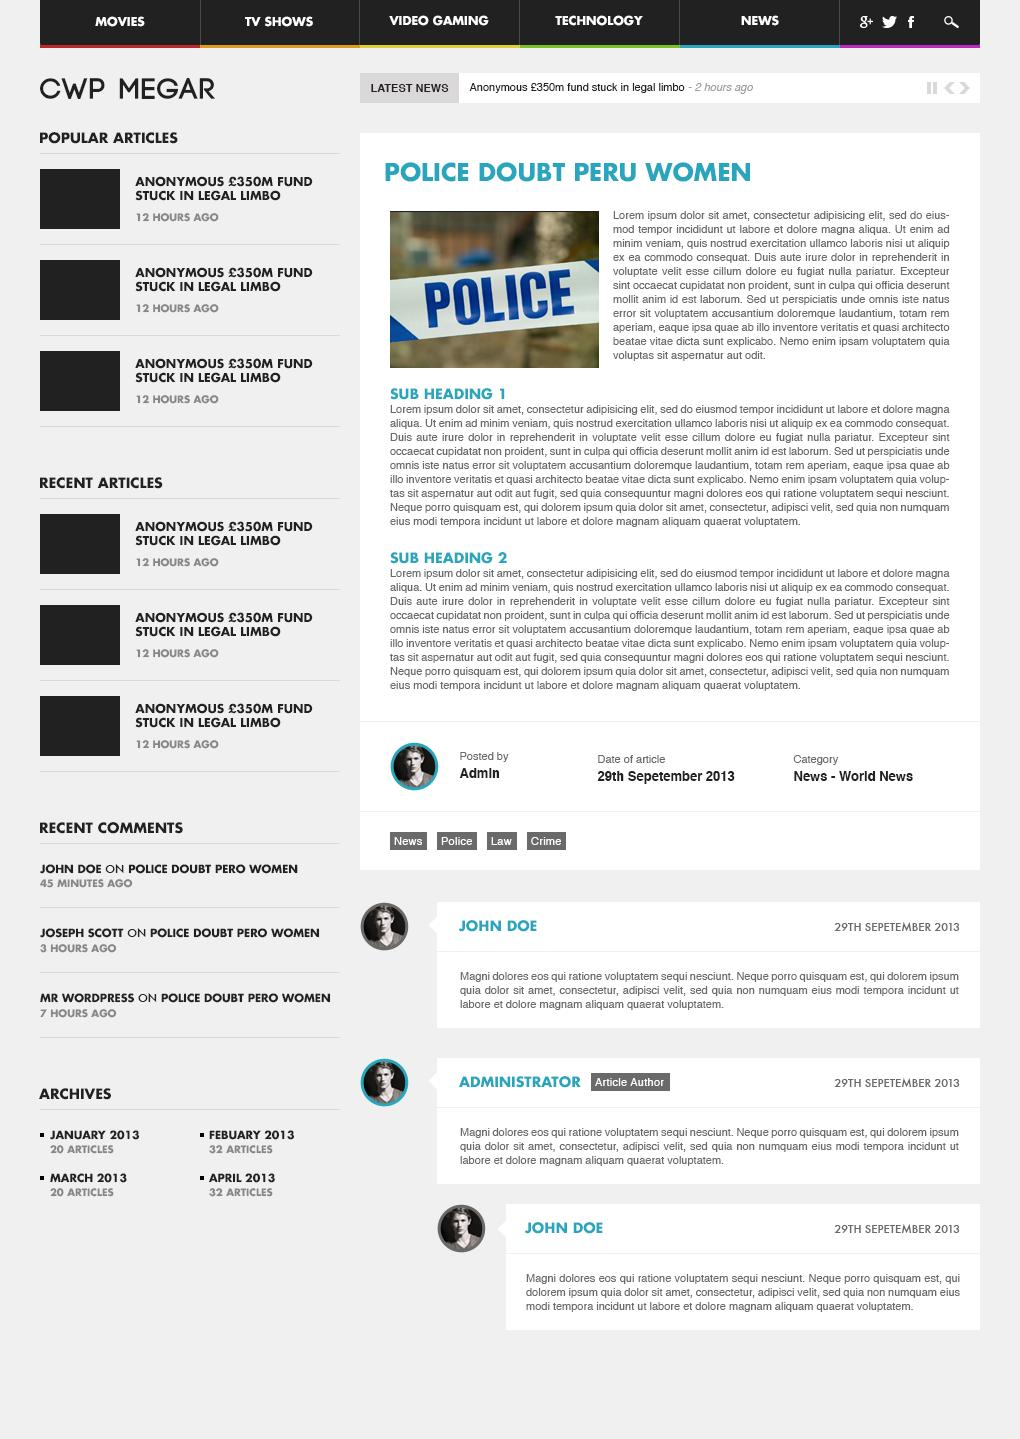 Professional Inner Page Web Design / Redesign by Sonny1993 - 58022